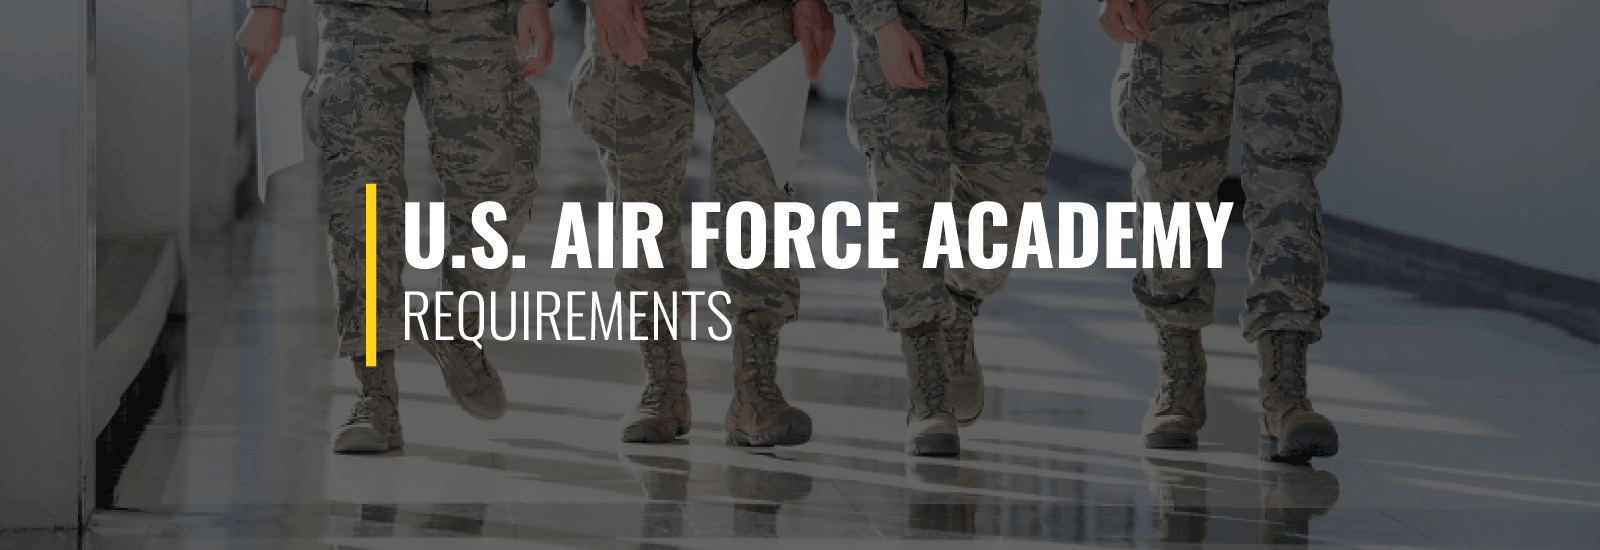 Air Force Academy Requirements